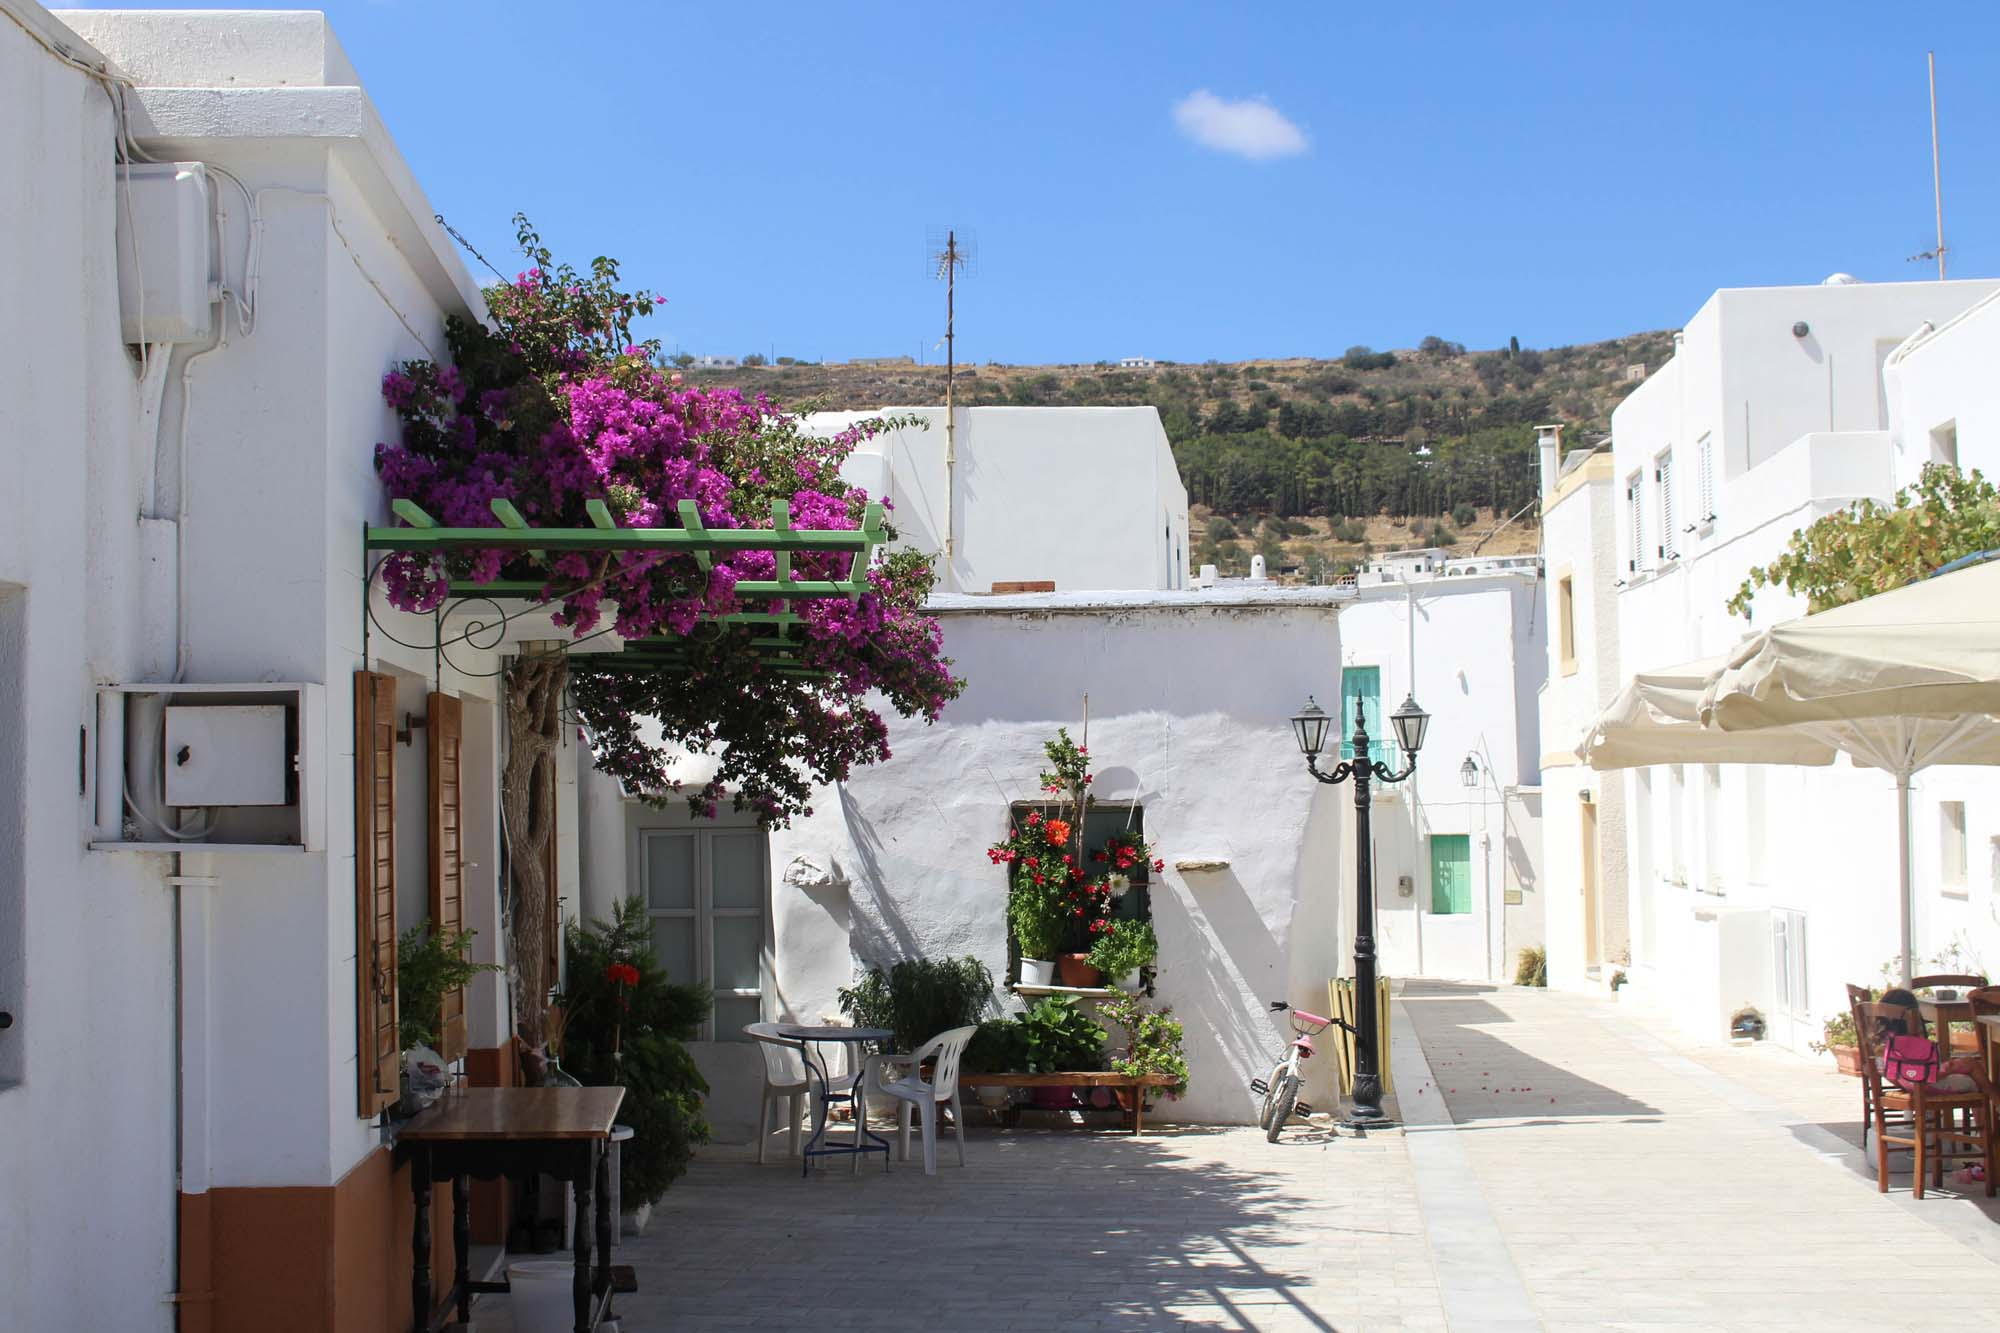 greece-paros-travel-linstantflo-9-sur-35